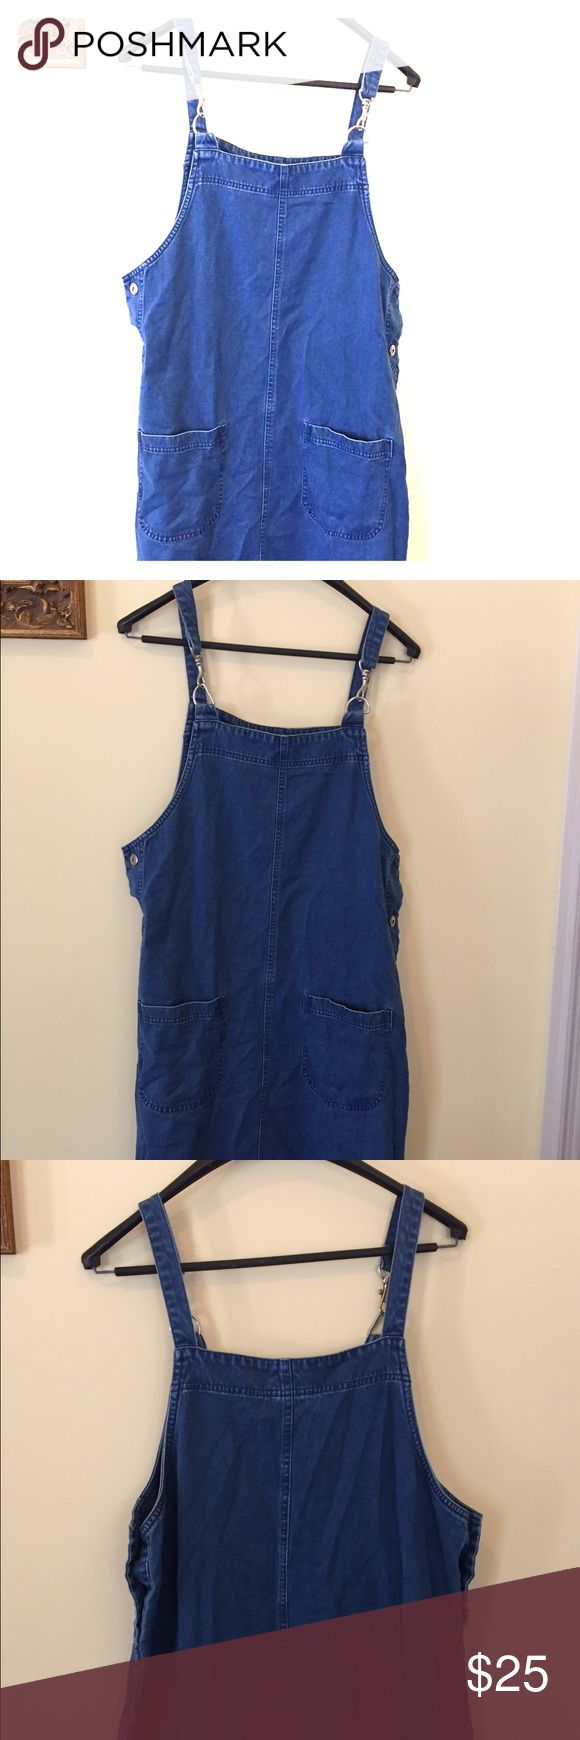 Vintage 90s Maxi Dress Denim vintage maxi dress inspired by the 90s. Has two utility pockets in the front. Can be worn with one side undone, tied at the side and with a floral collared shirt under. Have any ideas for this piece? #denim #romper #vintage #90s #festival Vintage Dresses Maxi